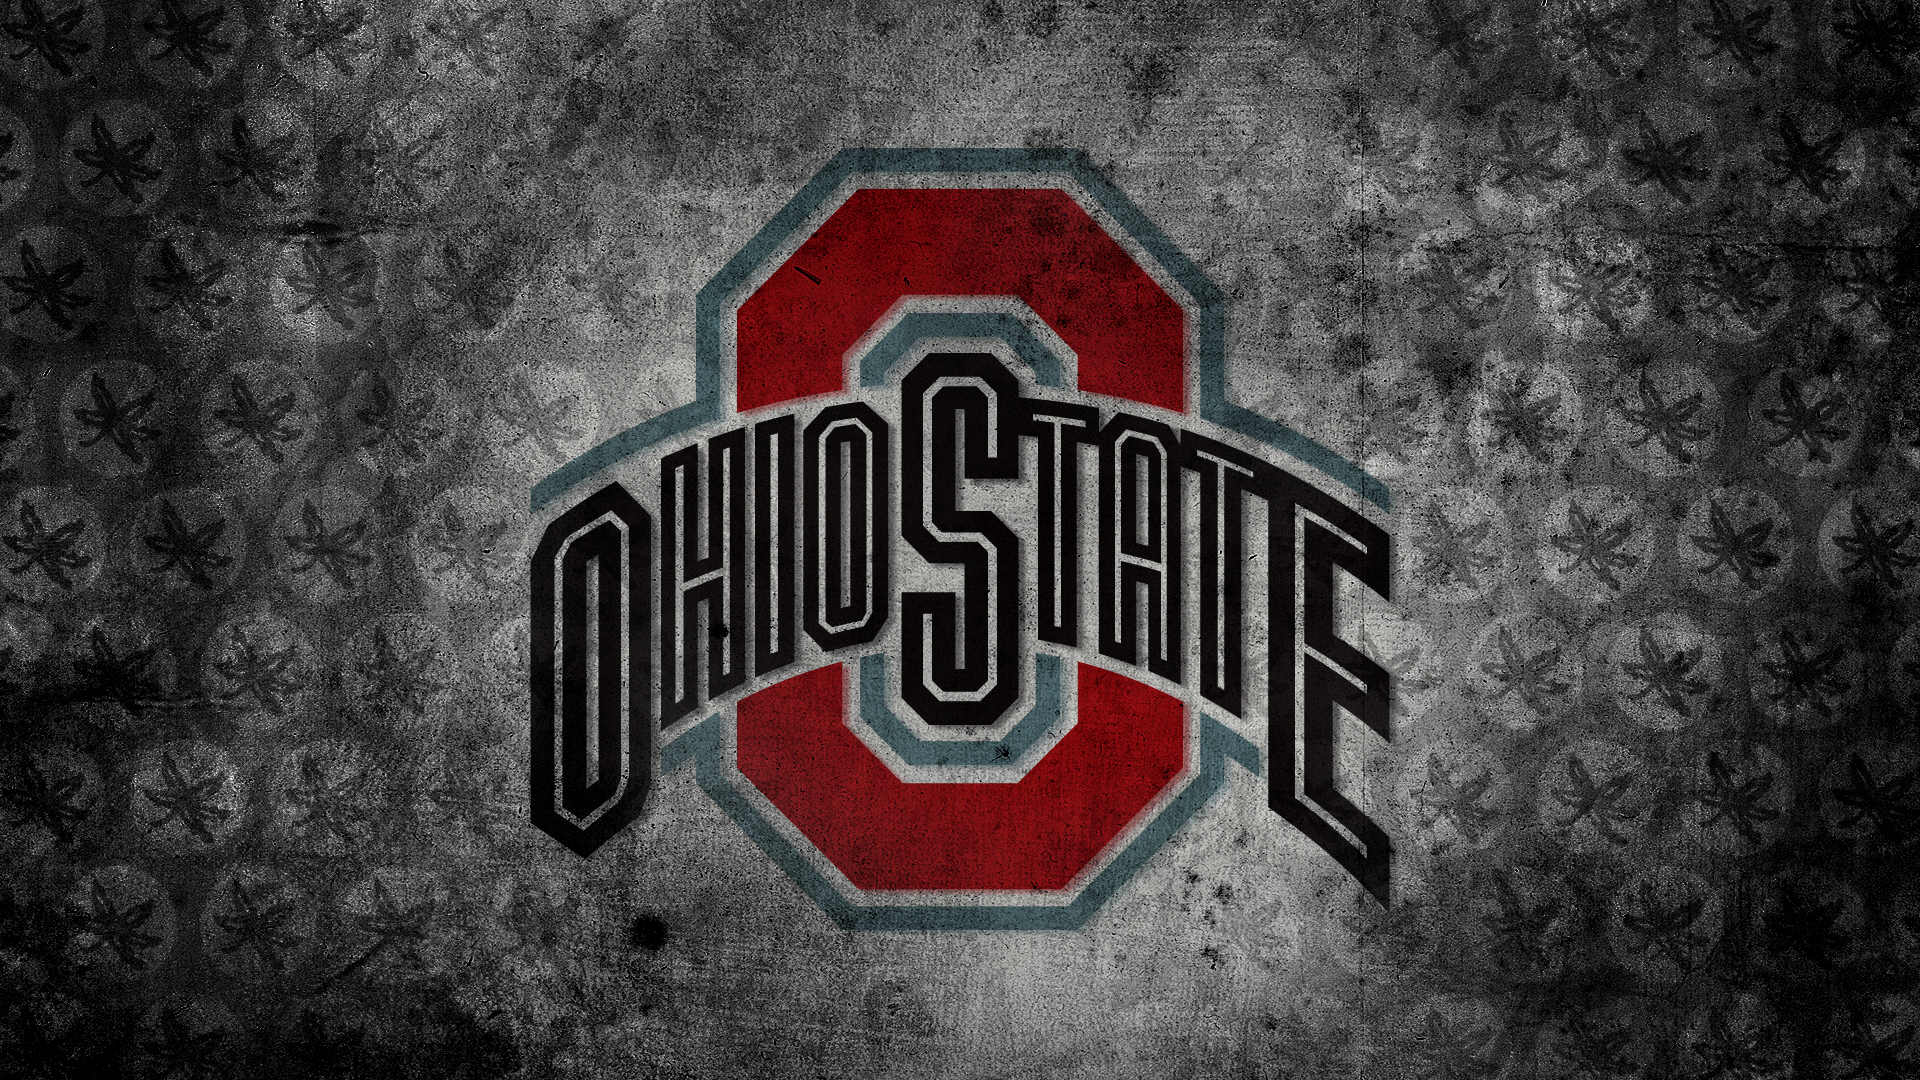 Ohio State Buckeyes Wallpaper Collection | Sports Geekery